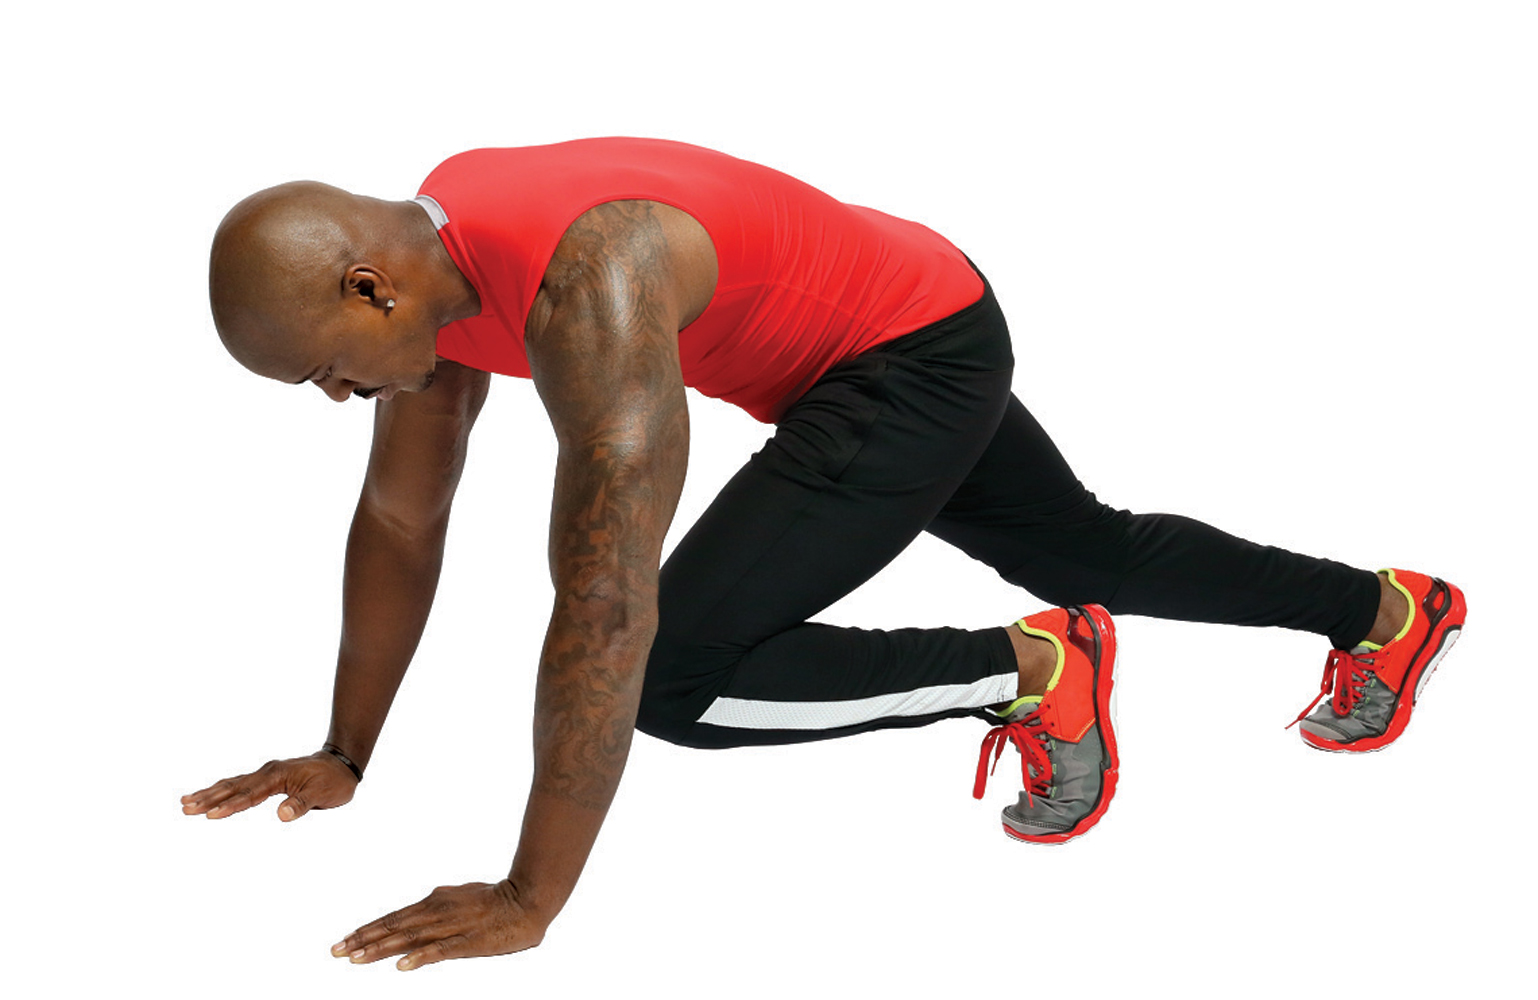 12. Mountain Climbers (30 seconds)